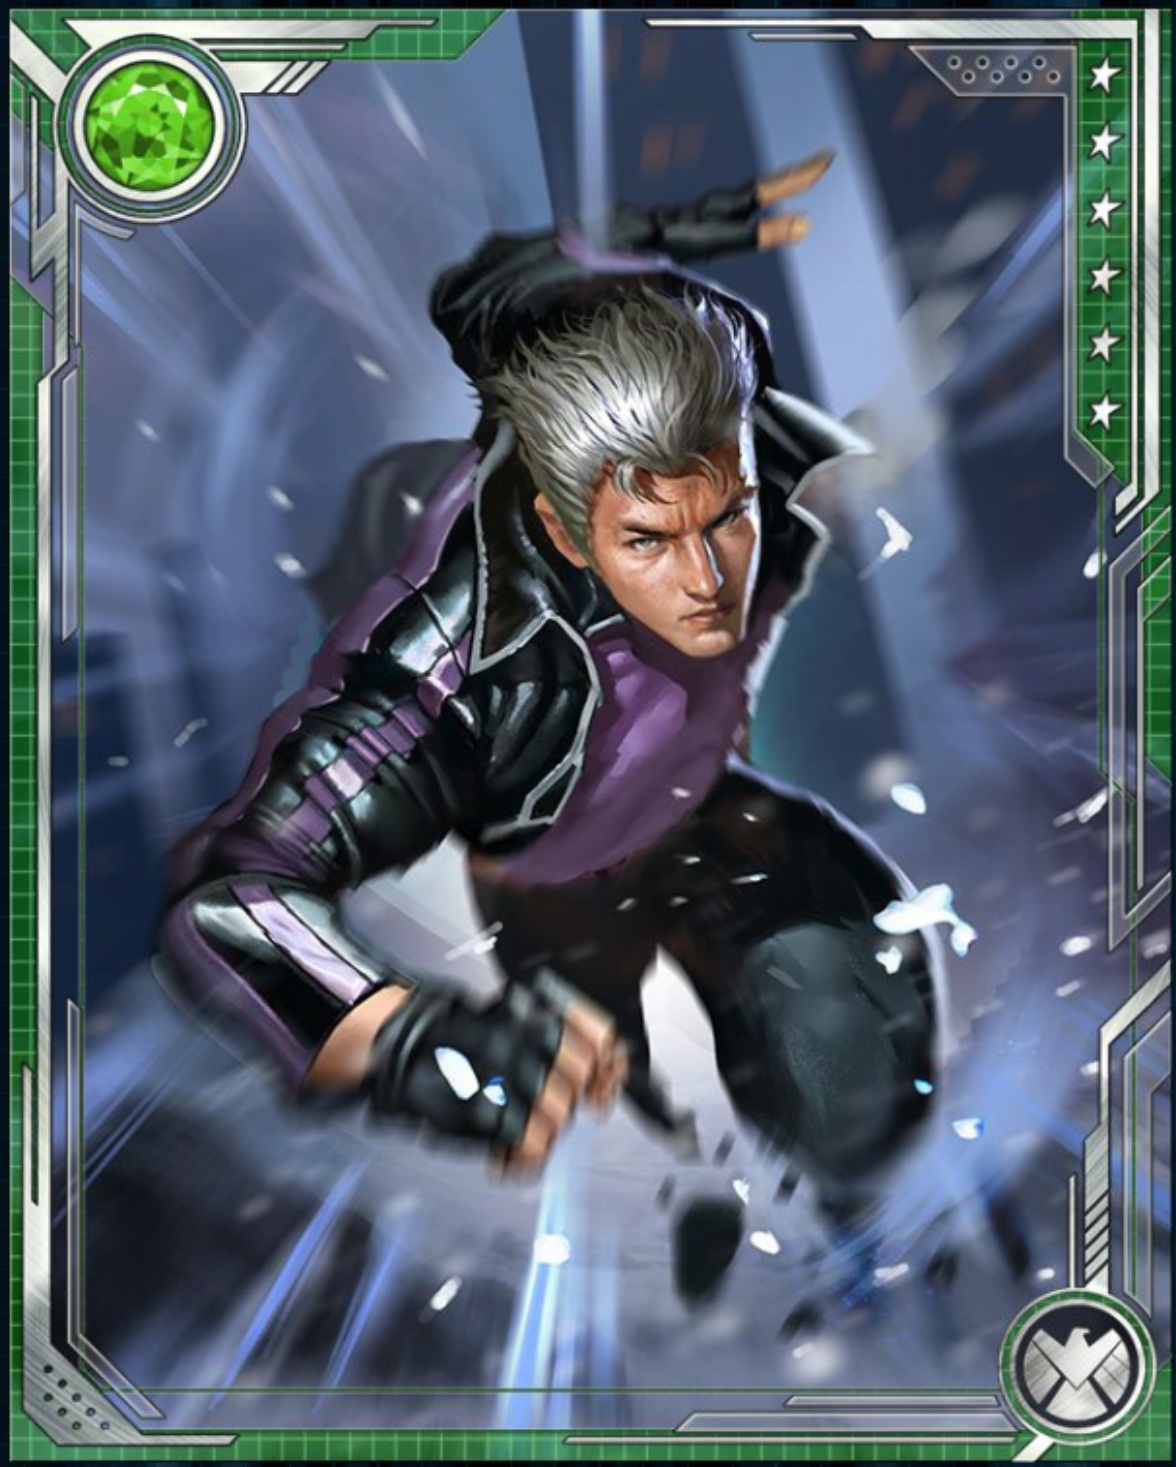 [Mutant or not] Quicksilver | Marvel: War of Heroes Wiki ...